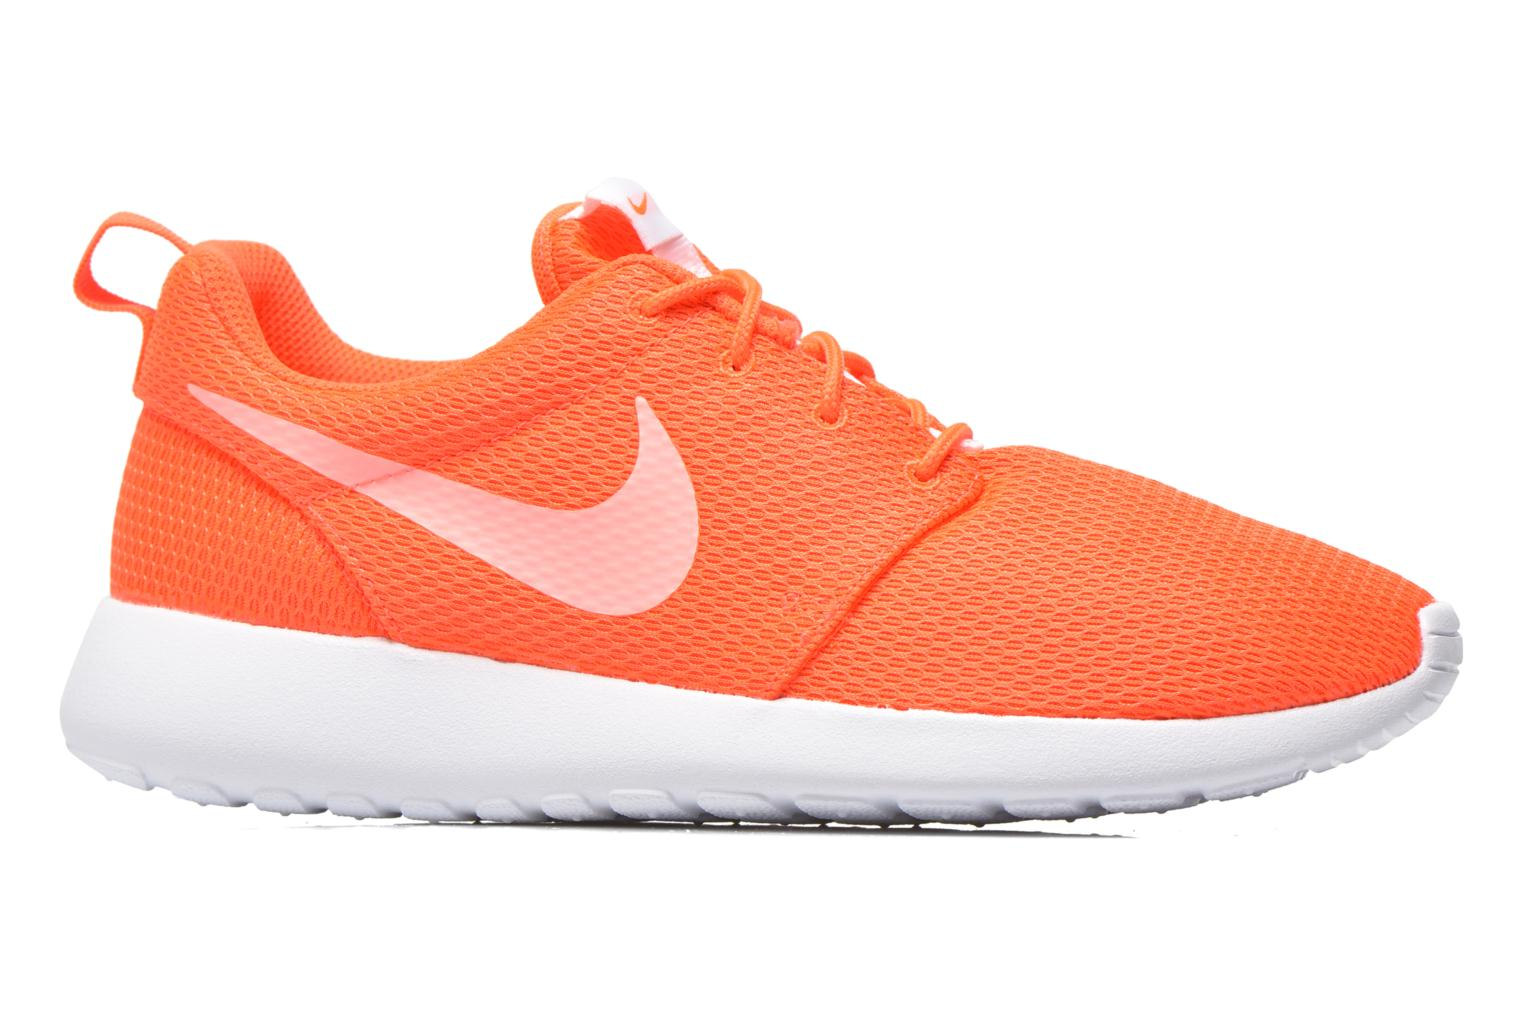 Baskets Nike Wmns Nike Roshe One Orange vue derrière